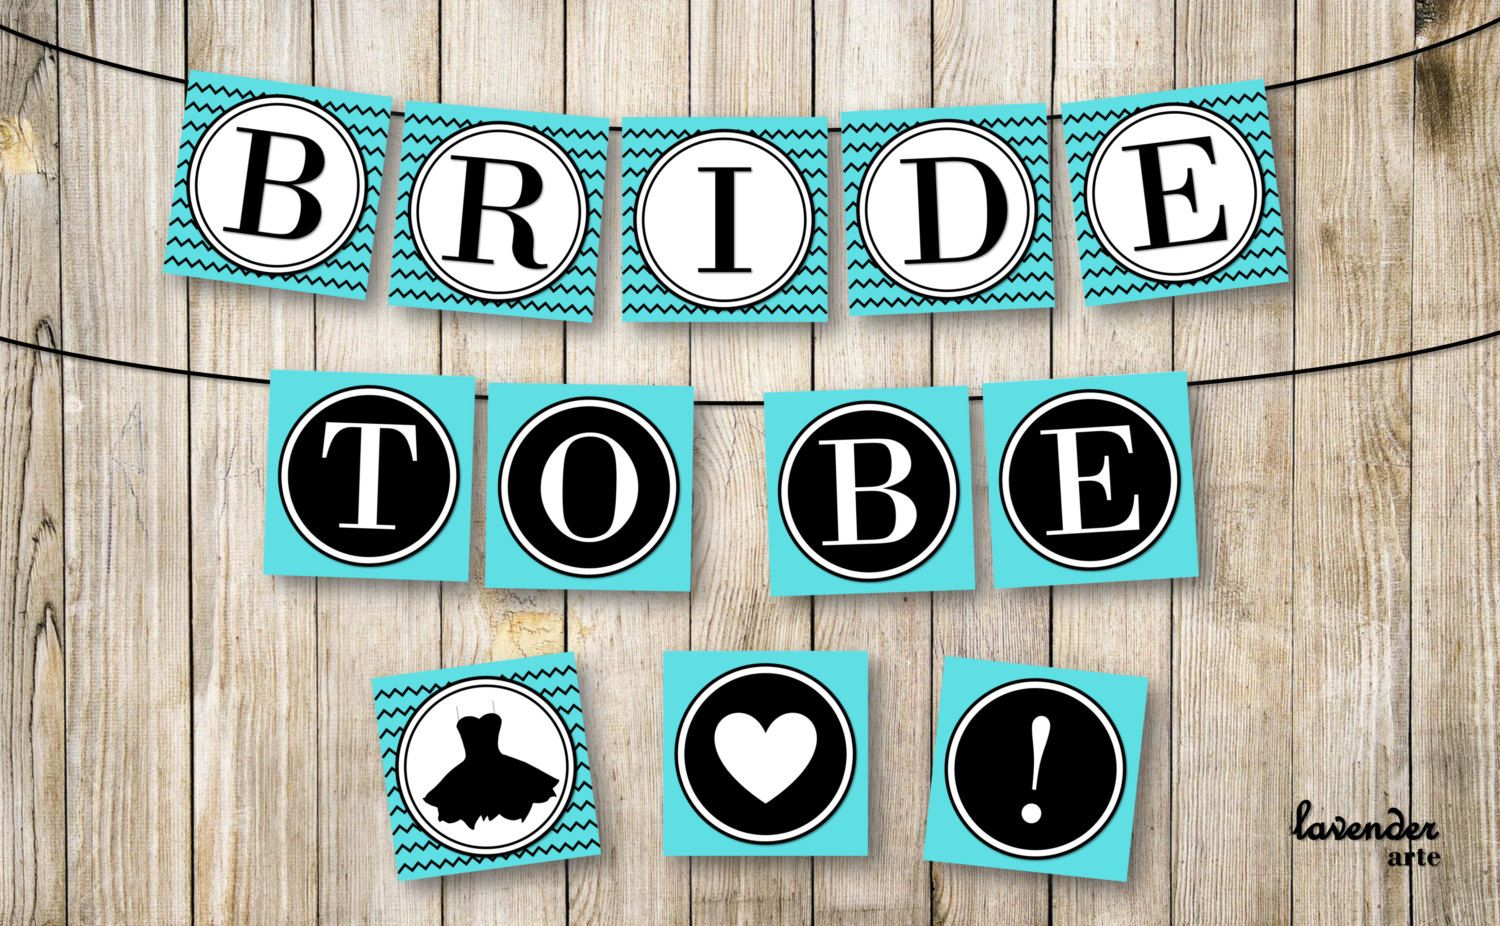 Blue Bridal Shower Banner Turquoise Black Bride To Be Party Garland ...